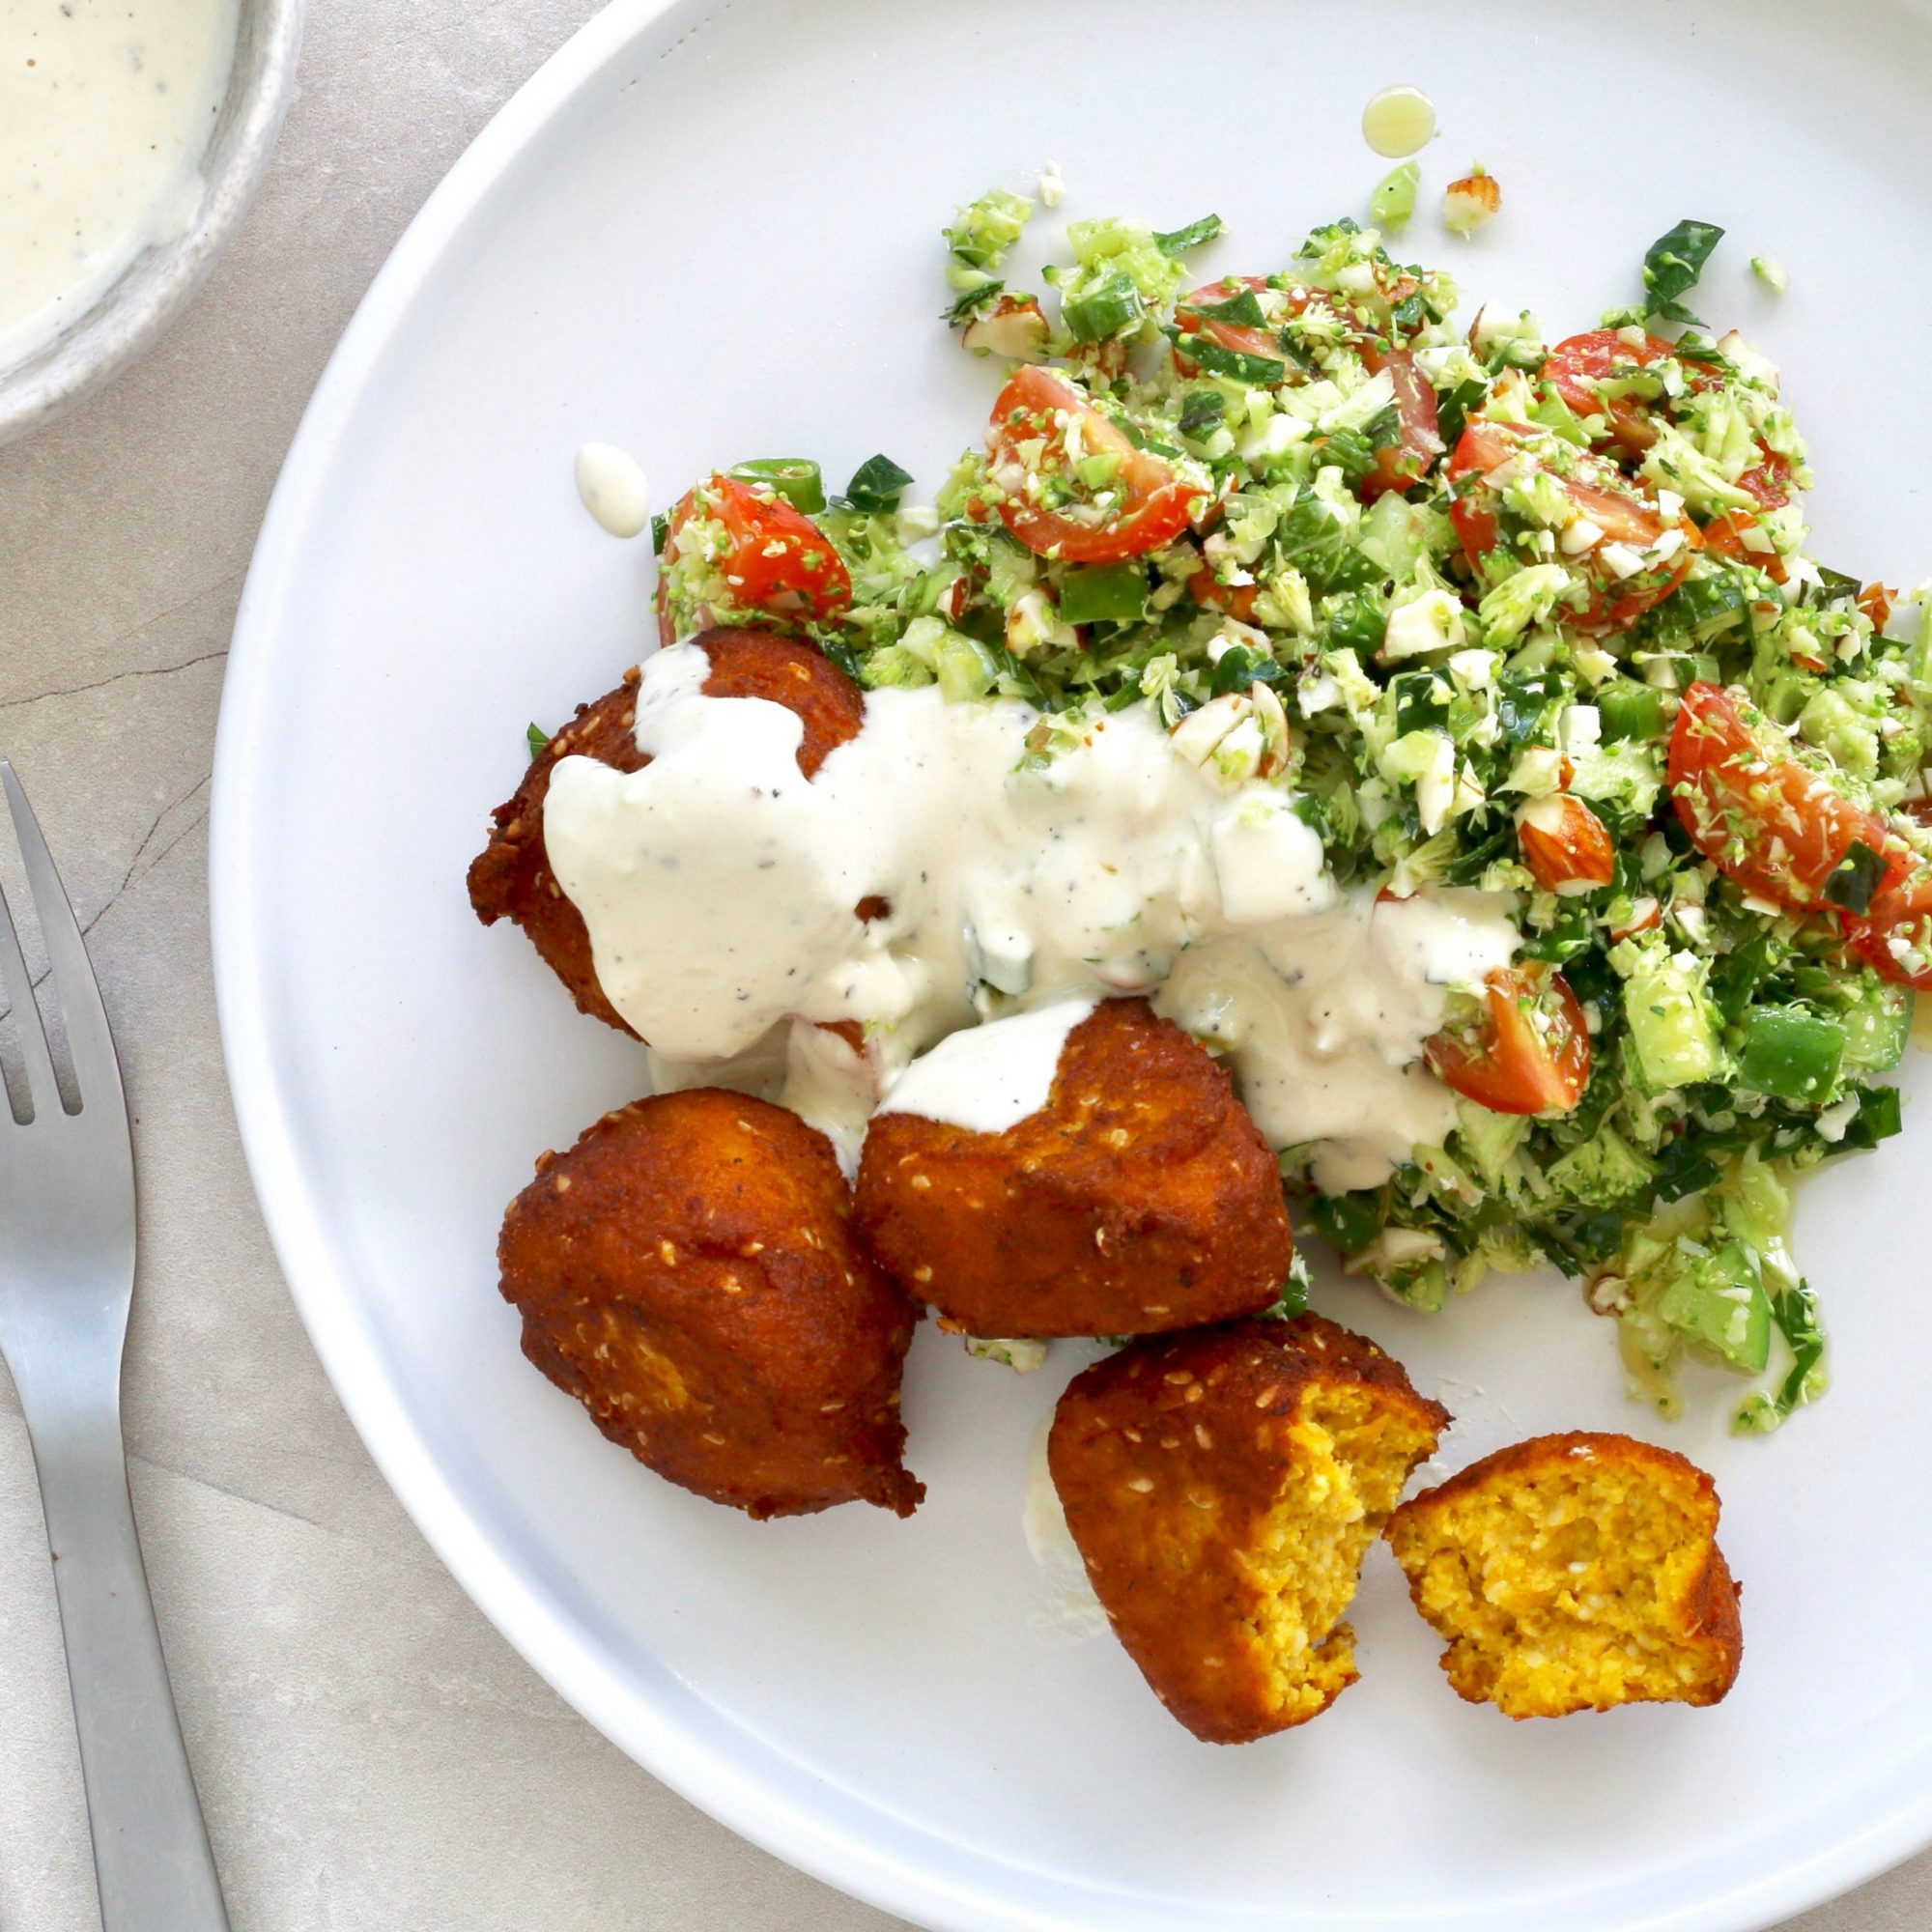 Pumpkin 'Falafel' with Broccoli Tabouli! w Cocolife Avocado Oil Spray